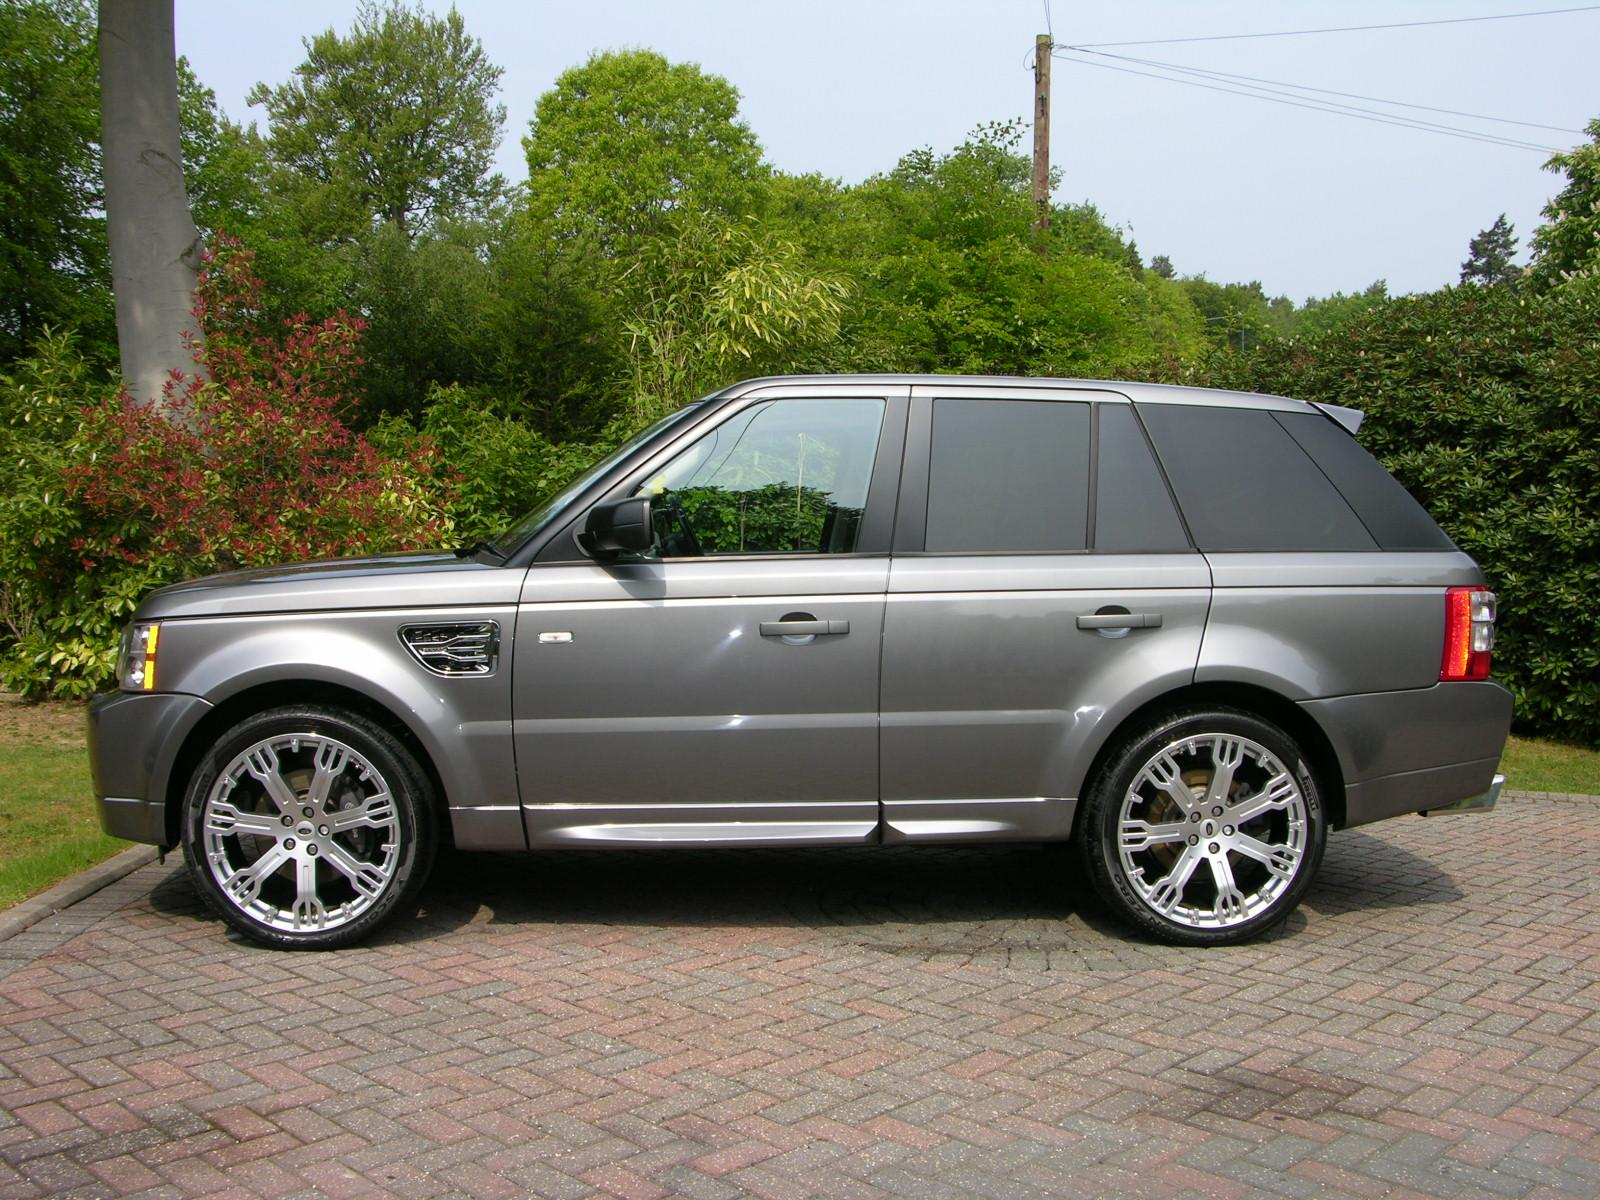 File 2008 Range Rover Sport Hst Tdv8 Flickr The Car Spy 28 Jpg Wikimedia Commons